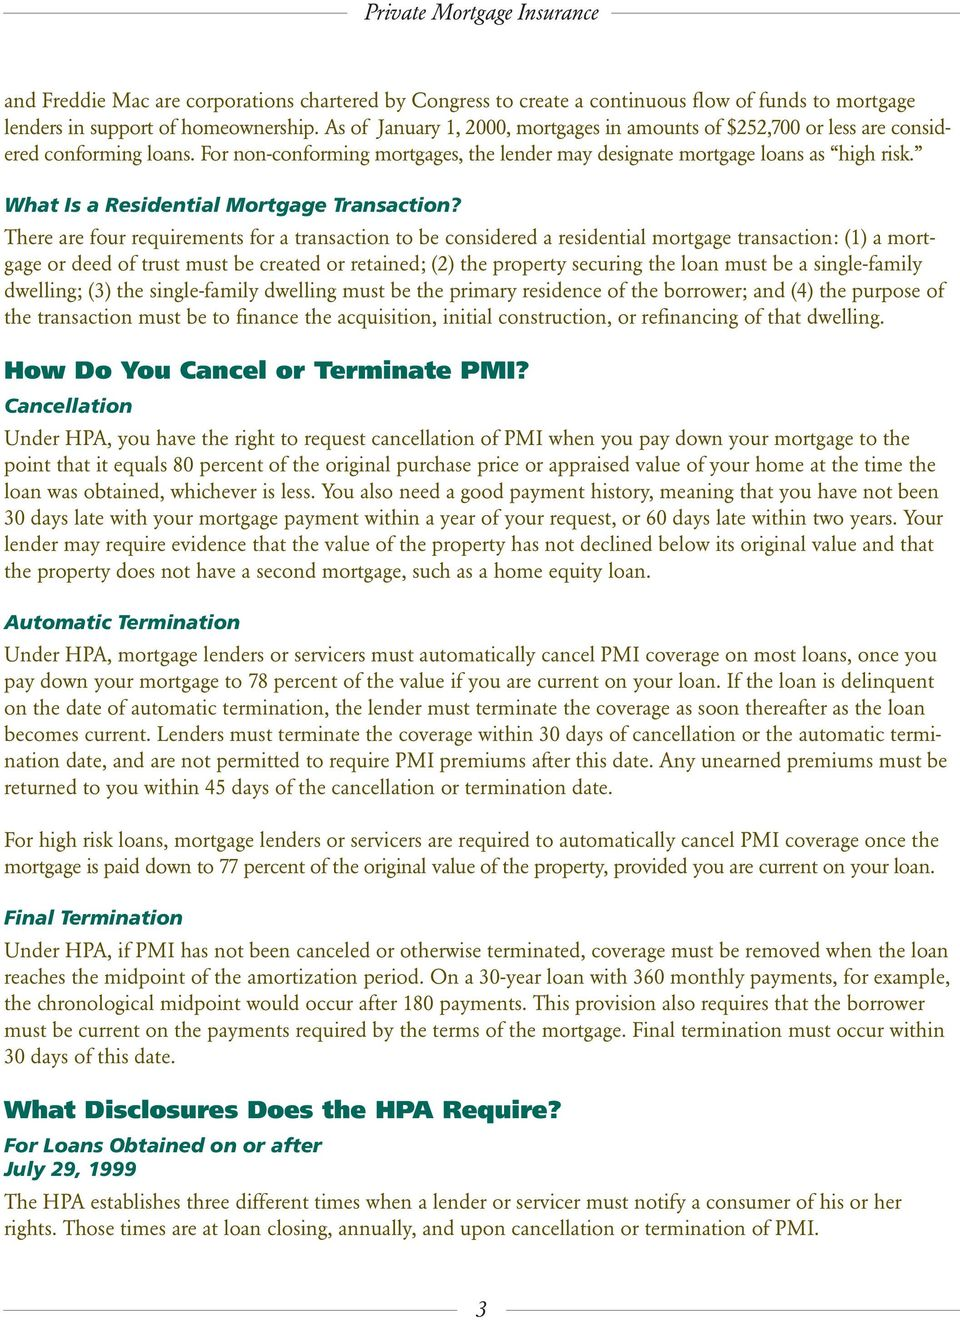 What Is a Residential Mortgage Transaction?